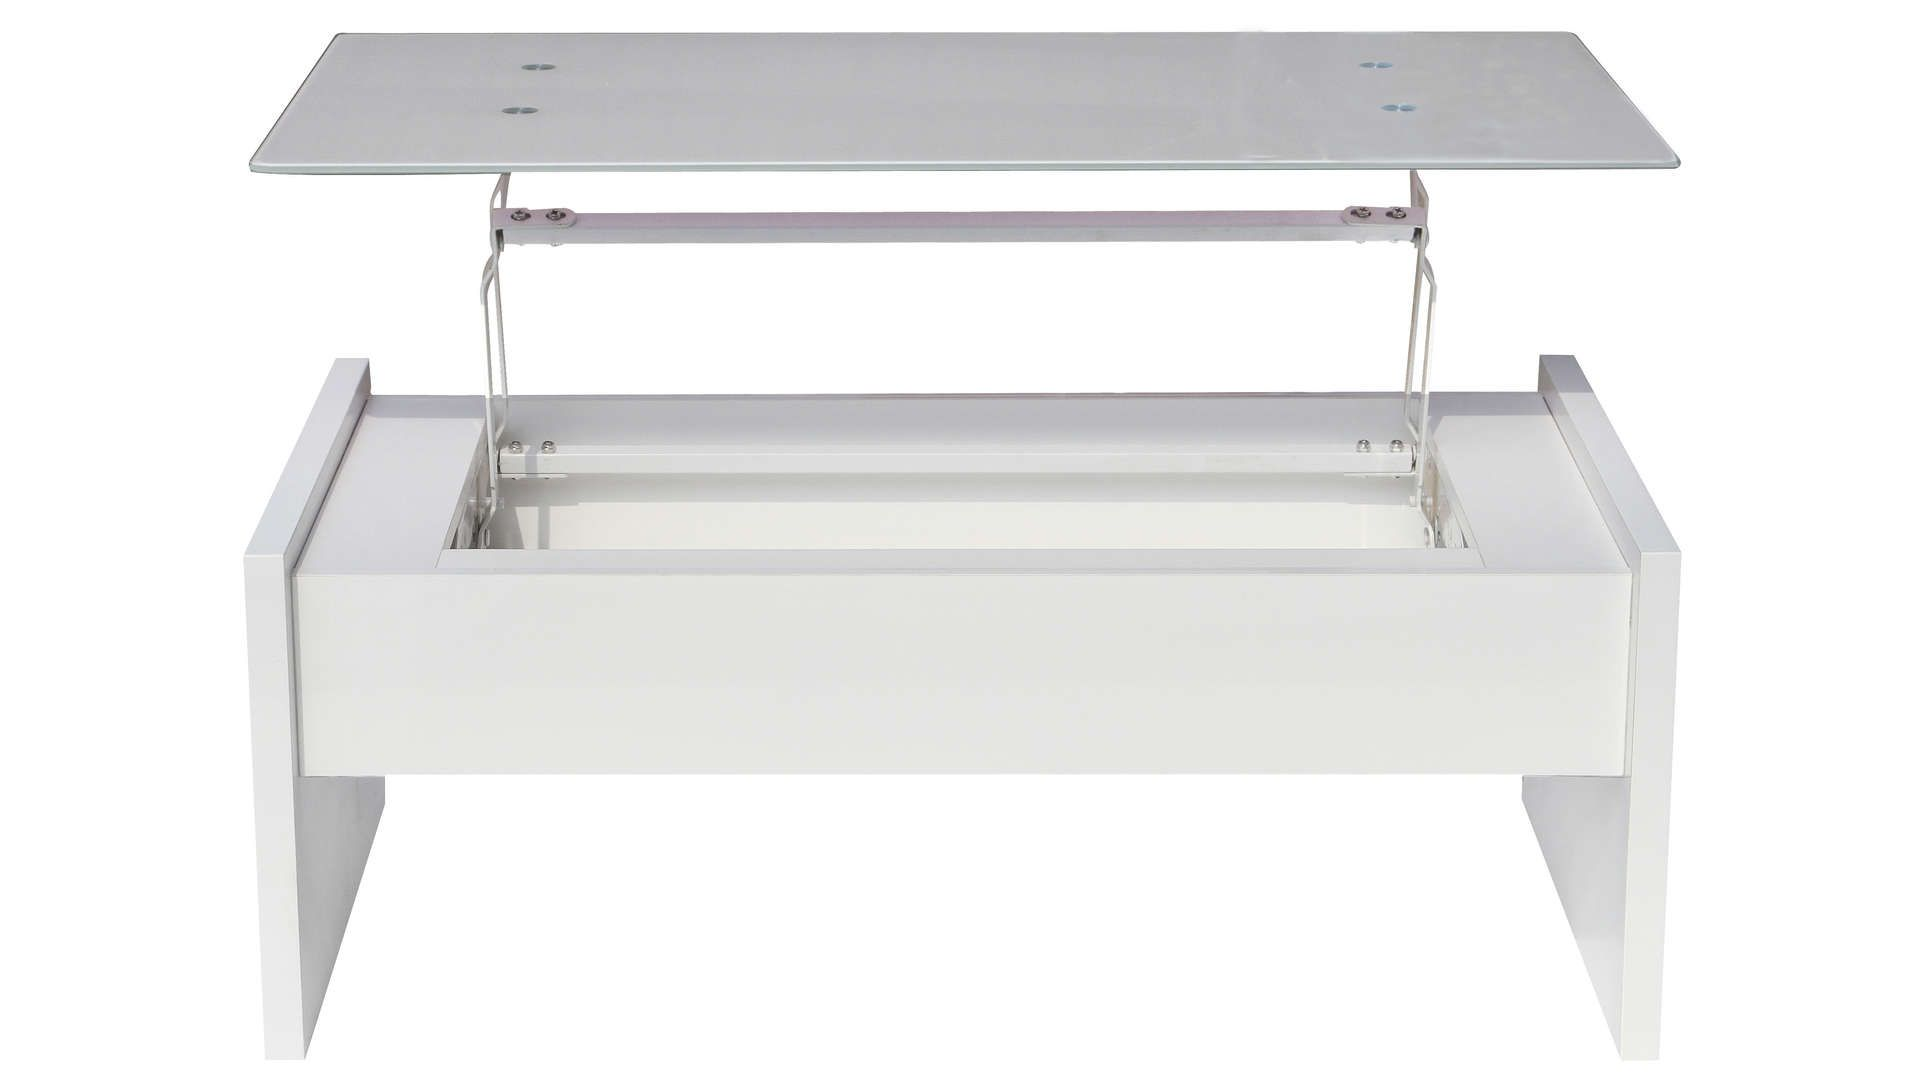 Table Basse Rectangulaire Avec Plateau Relevable Lexie Coloris Blanc Table Basse Rectangulaire Table Basse Et Plateau